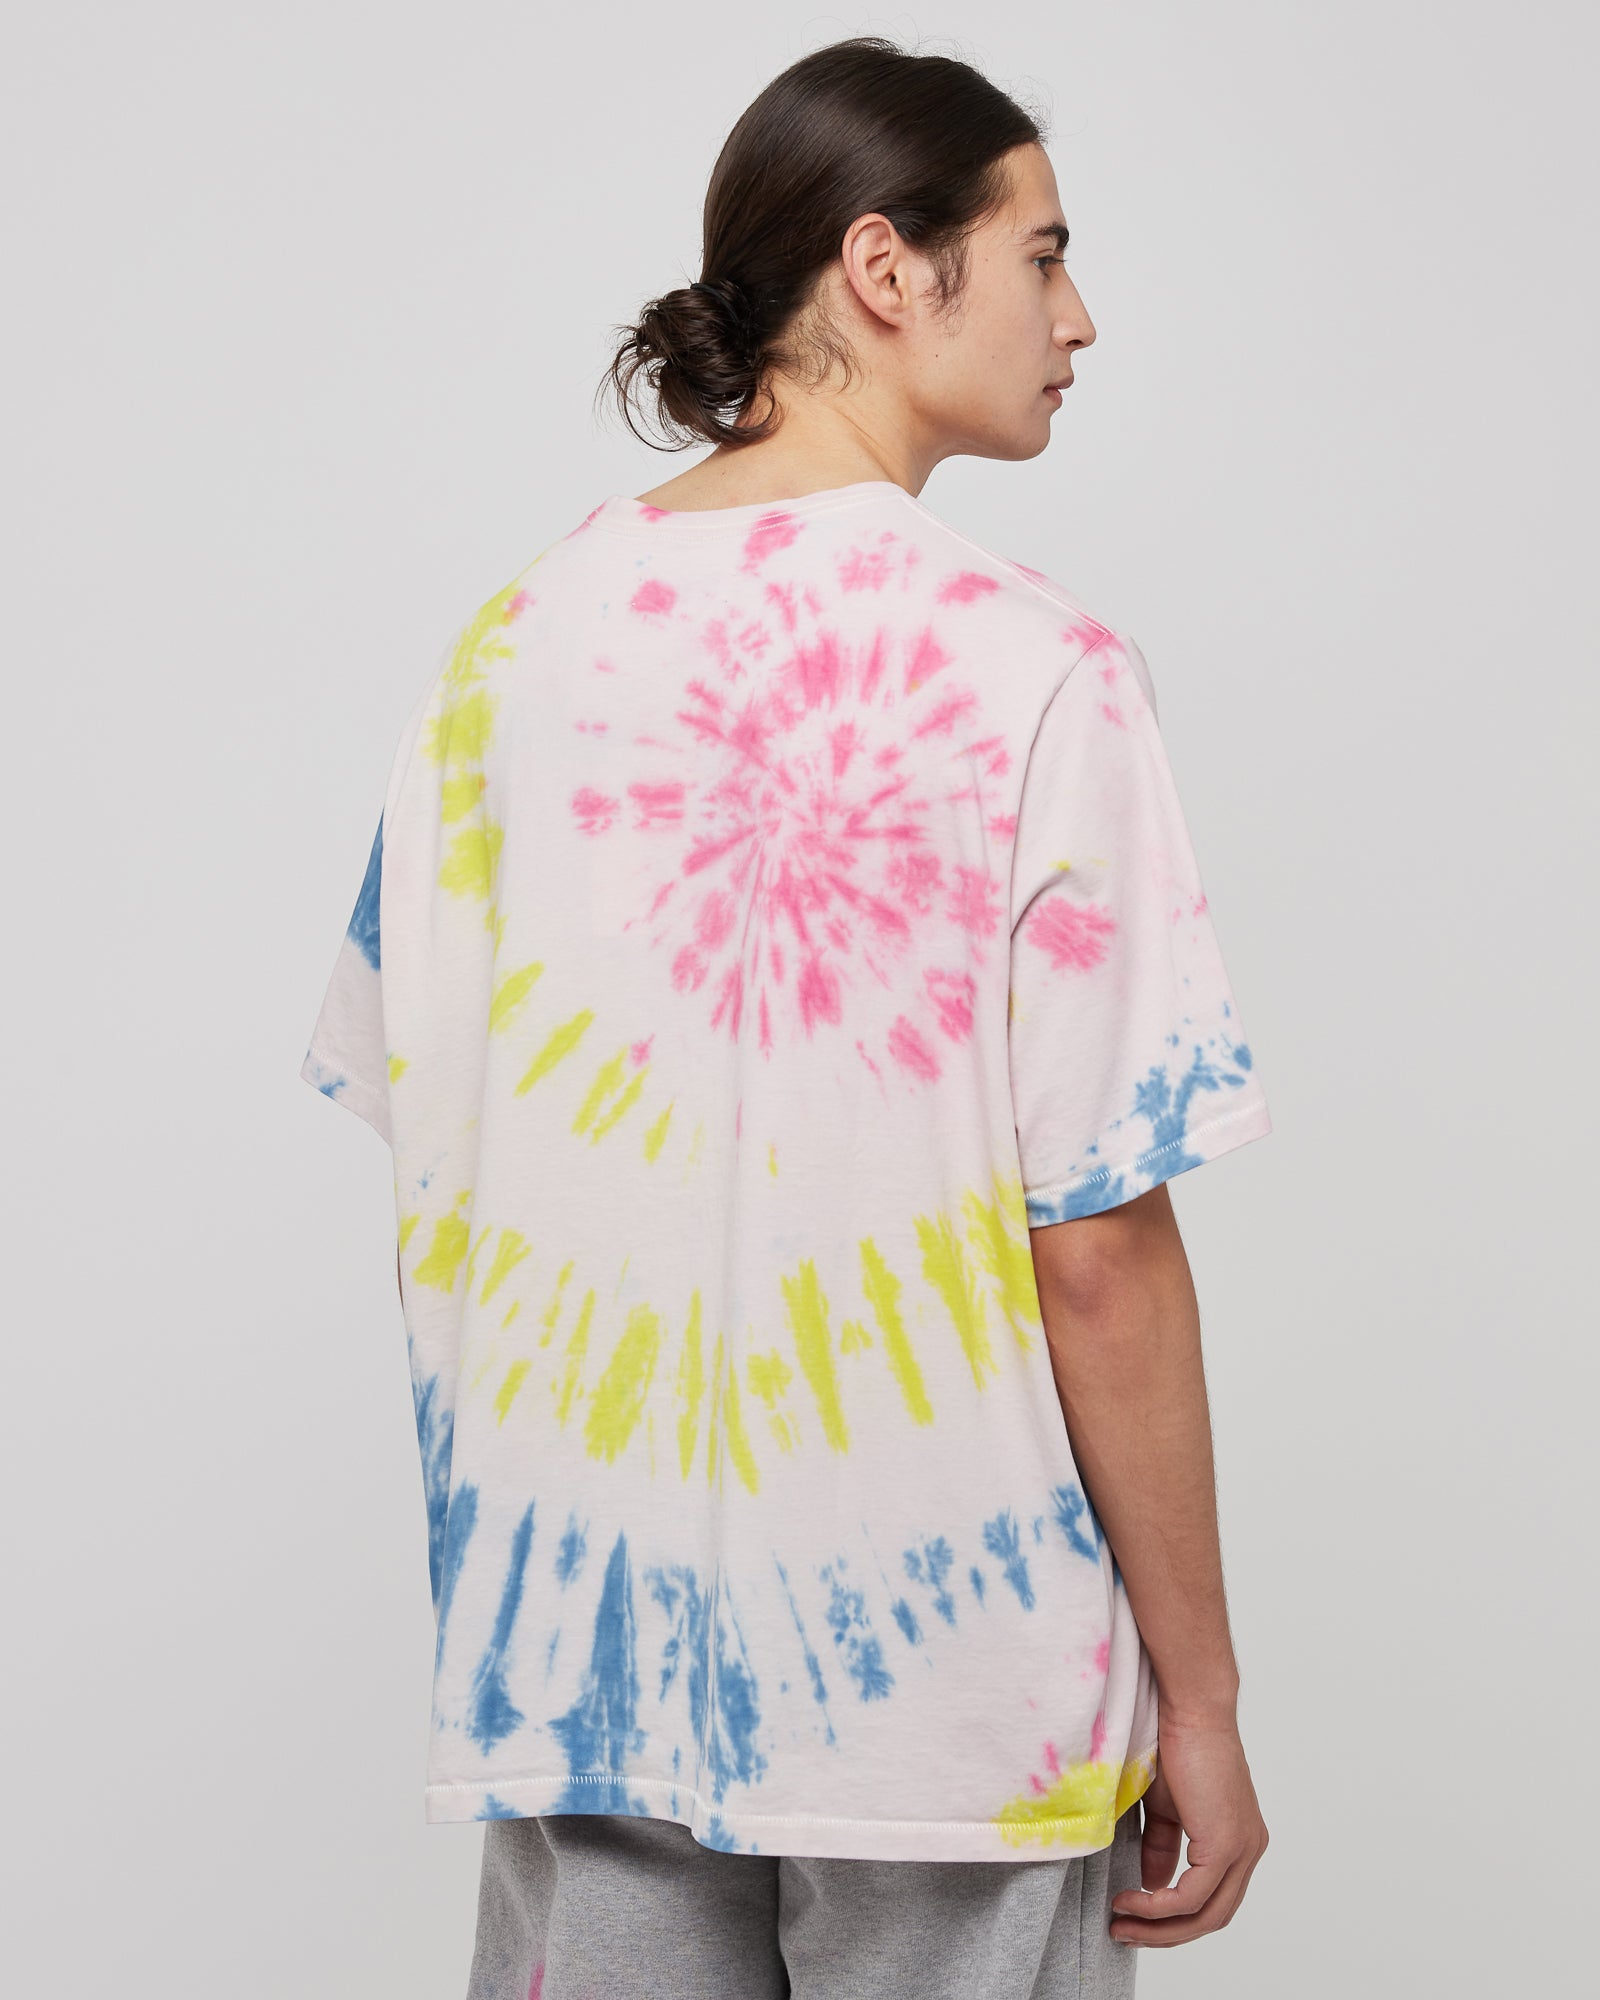 Arts & Crafts T-Shirt in Multi Tyedye